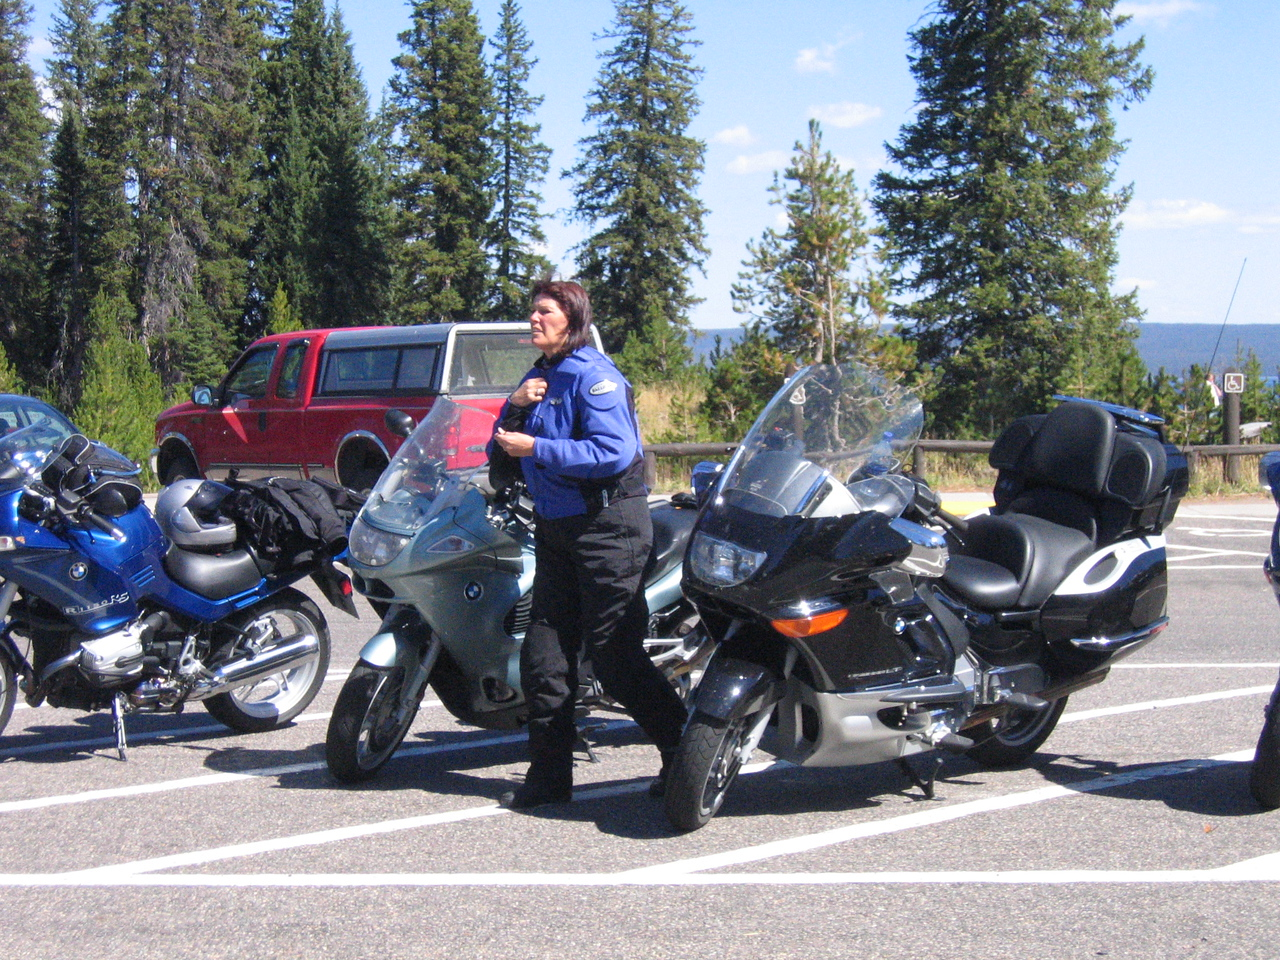 Deb Sauer takes a break from her K-1200GT.